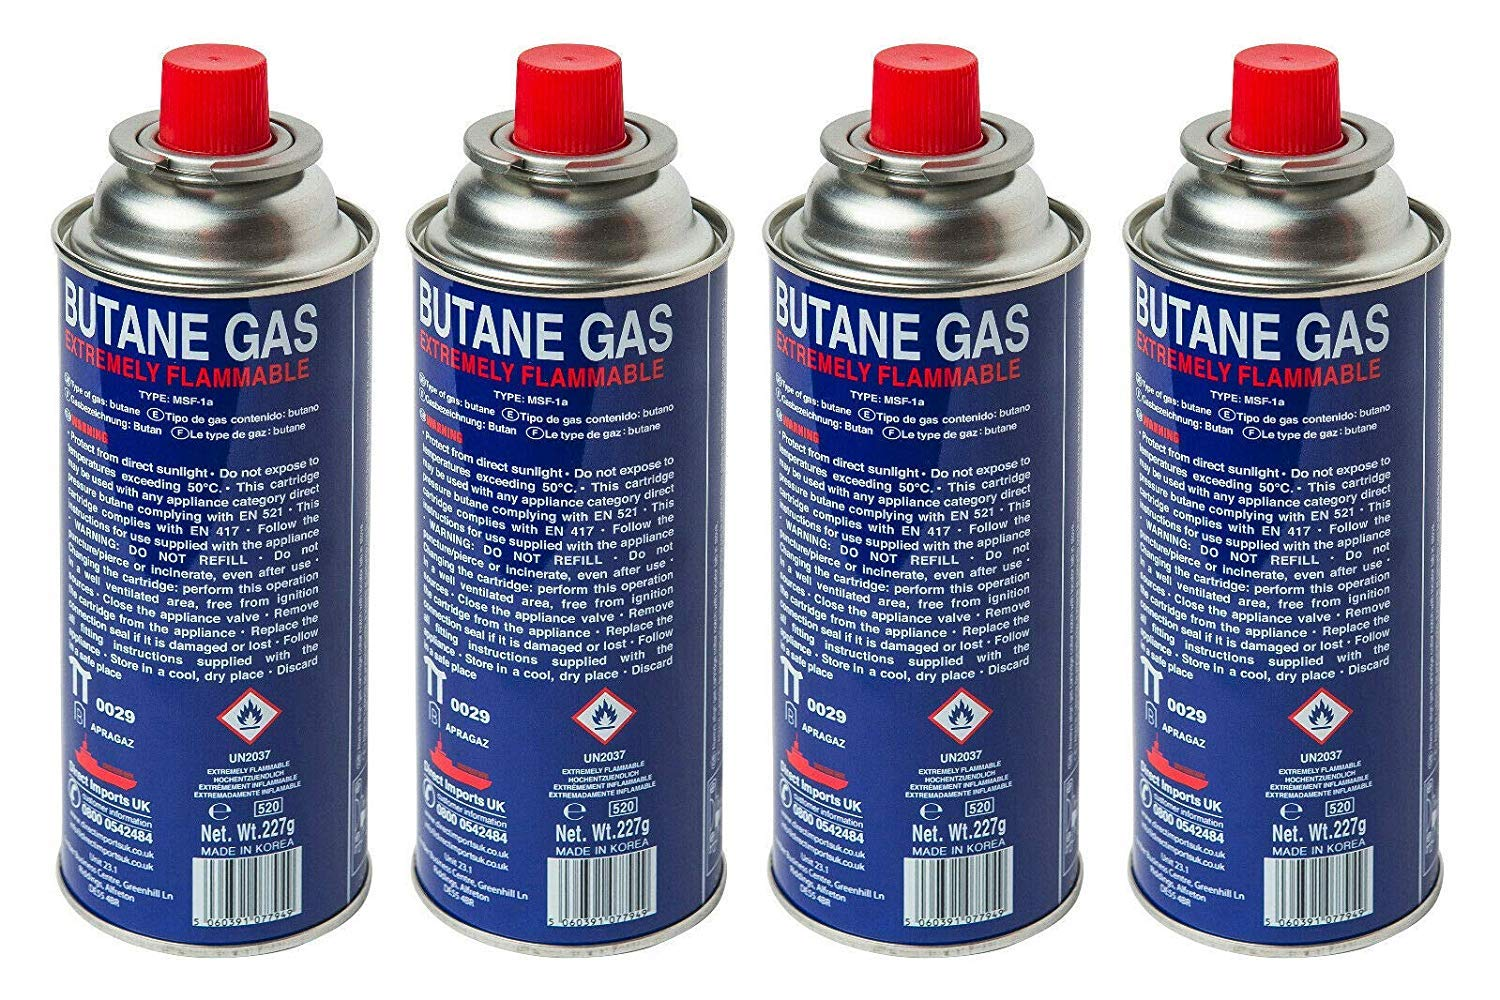 BUTANE GAS BOTTLES CANISTERS FOR PORTABLE STOVES COOKERS GRILL HEATERS